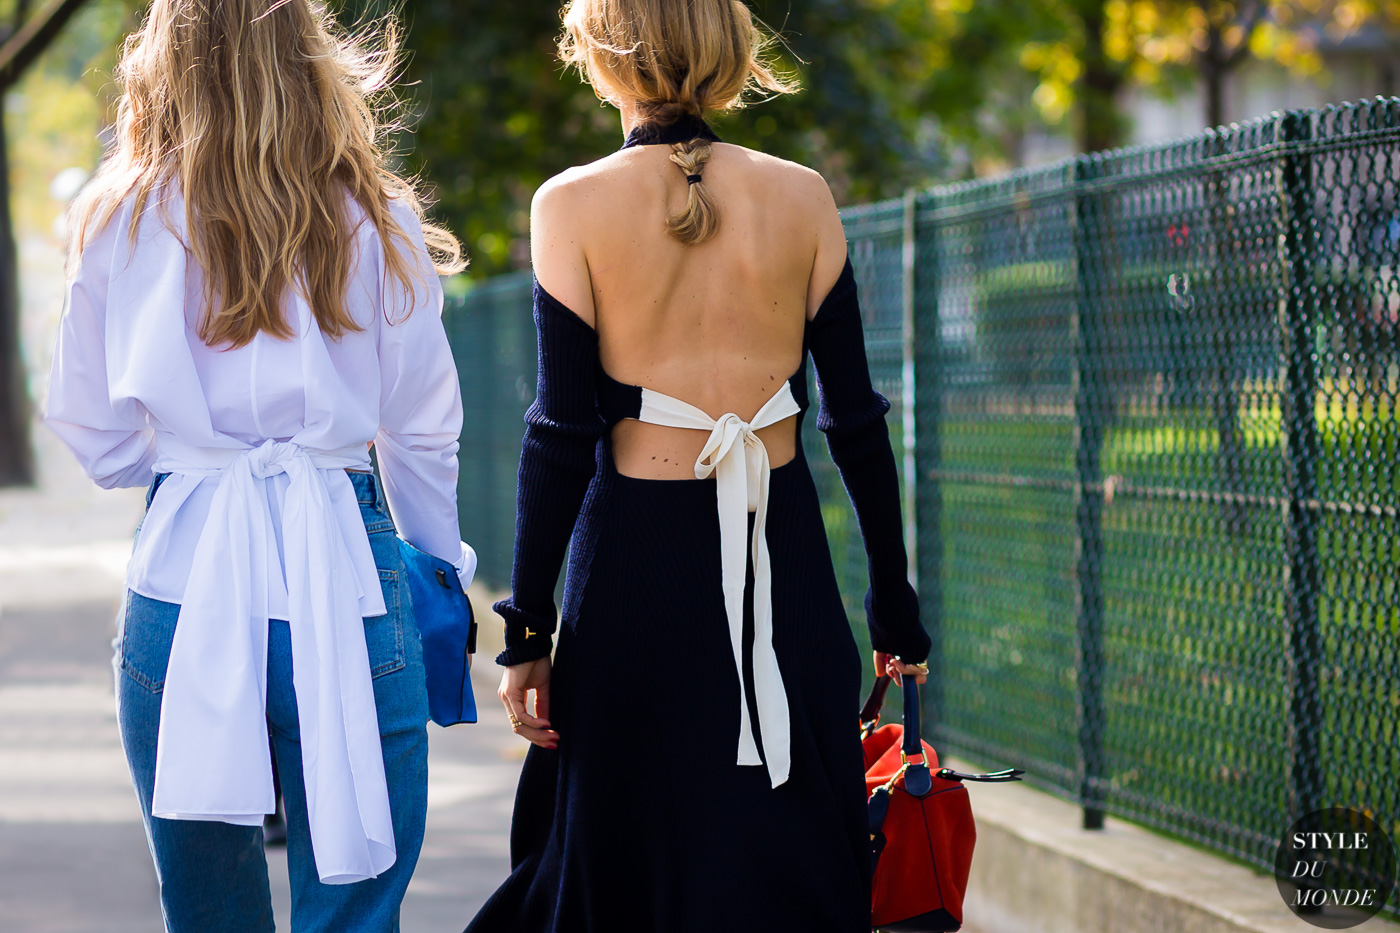 Alexandra Carl and Pernille Teisbaek Street Style Street Fashion Streetsnaps by STYLEDUMONDE Street Style Fashion Photography